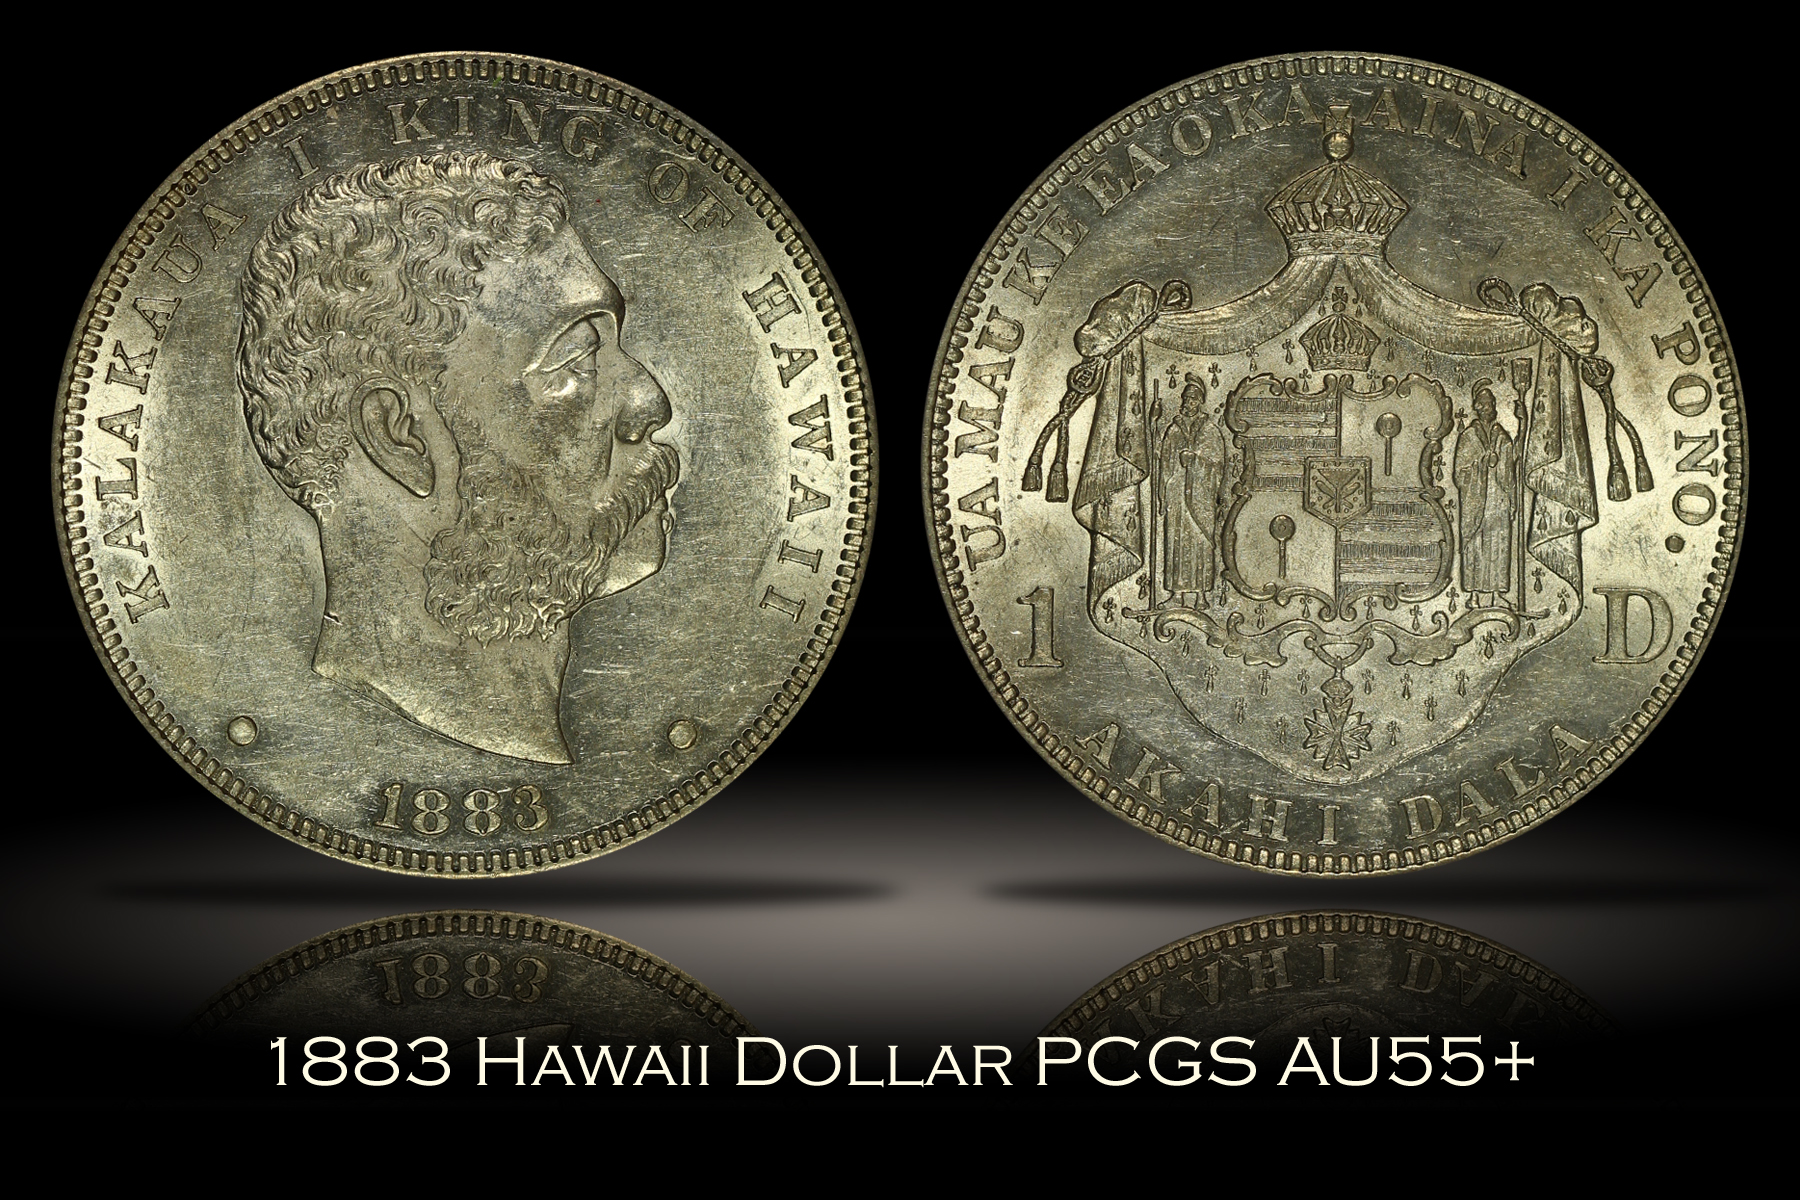 1883 Hawaii Silver Dollar PCGS AU55+